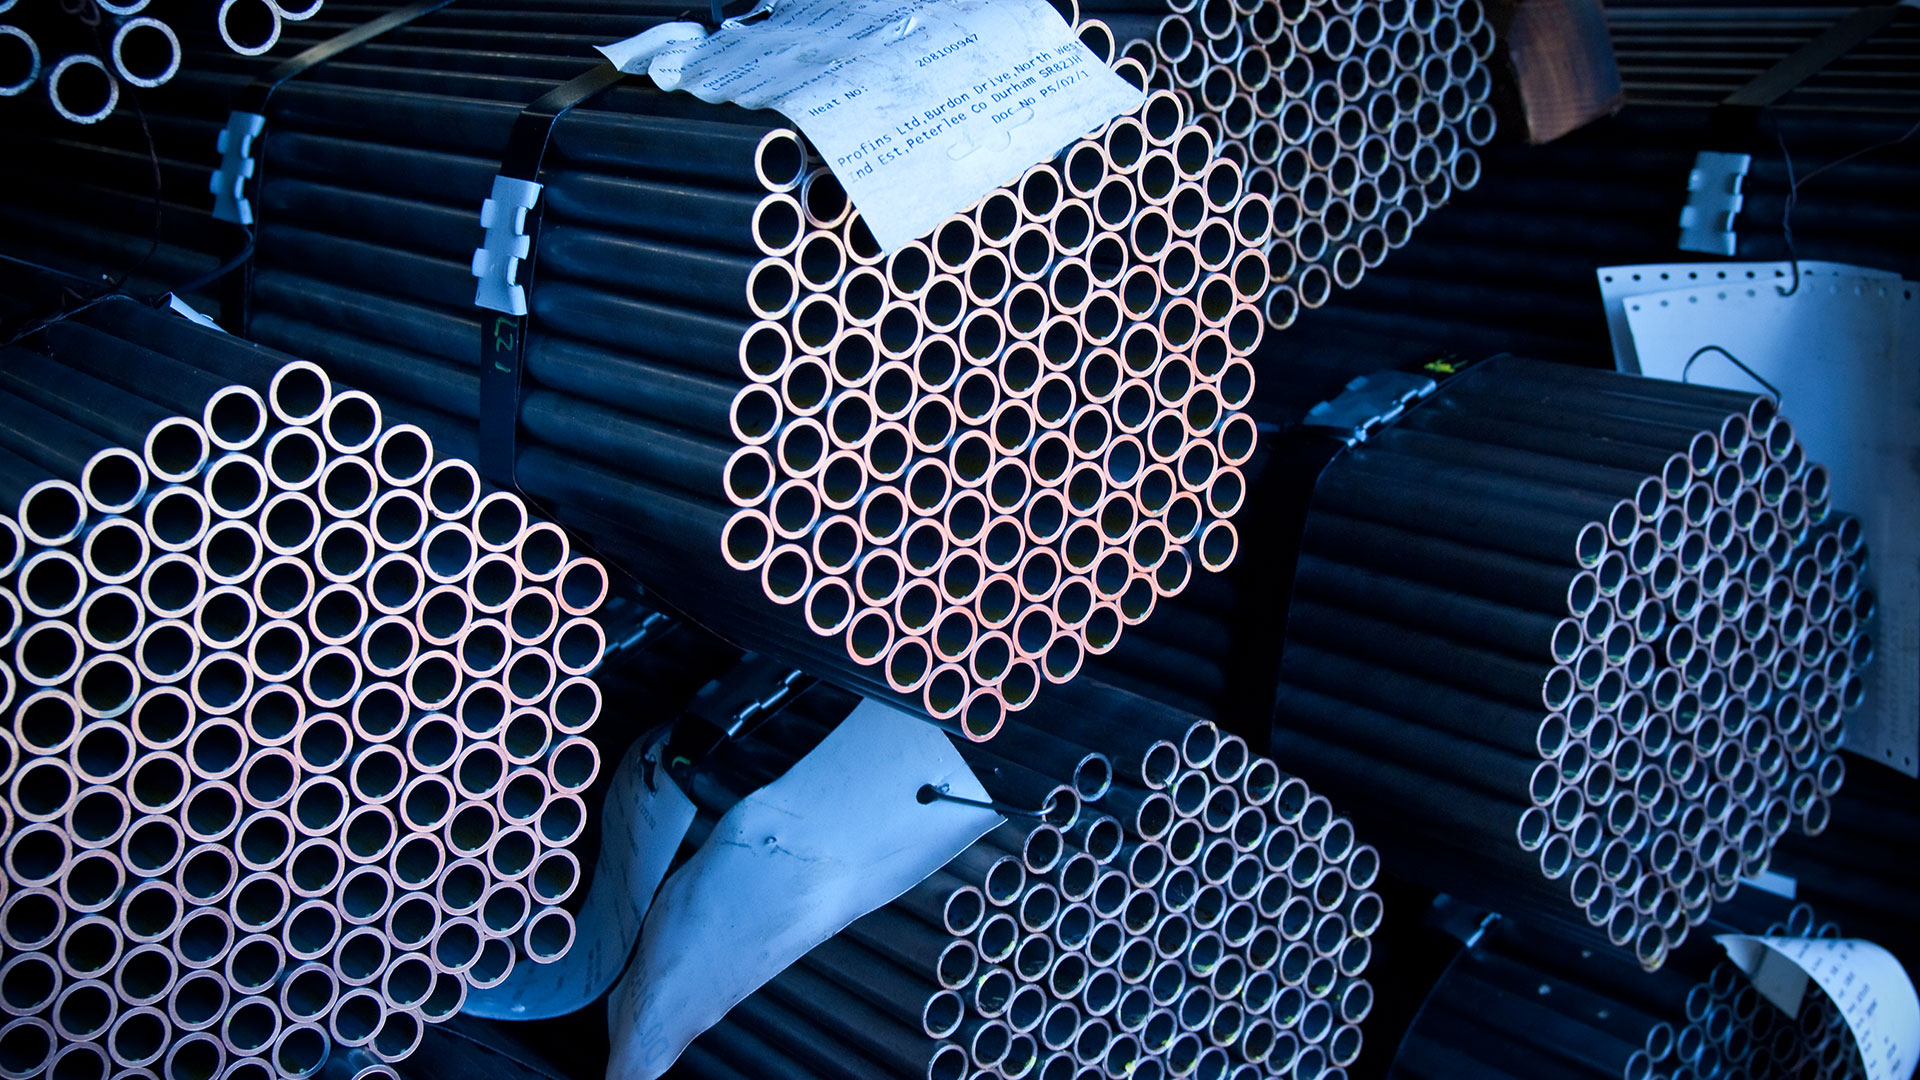 Plain Heat Exchanger Tubes